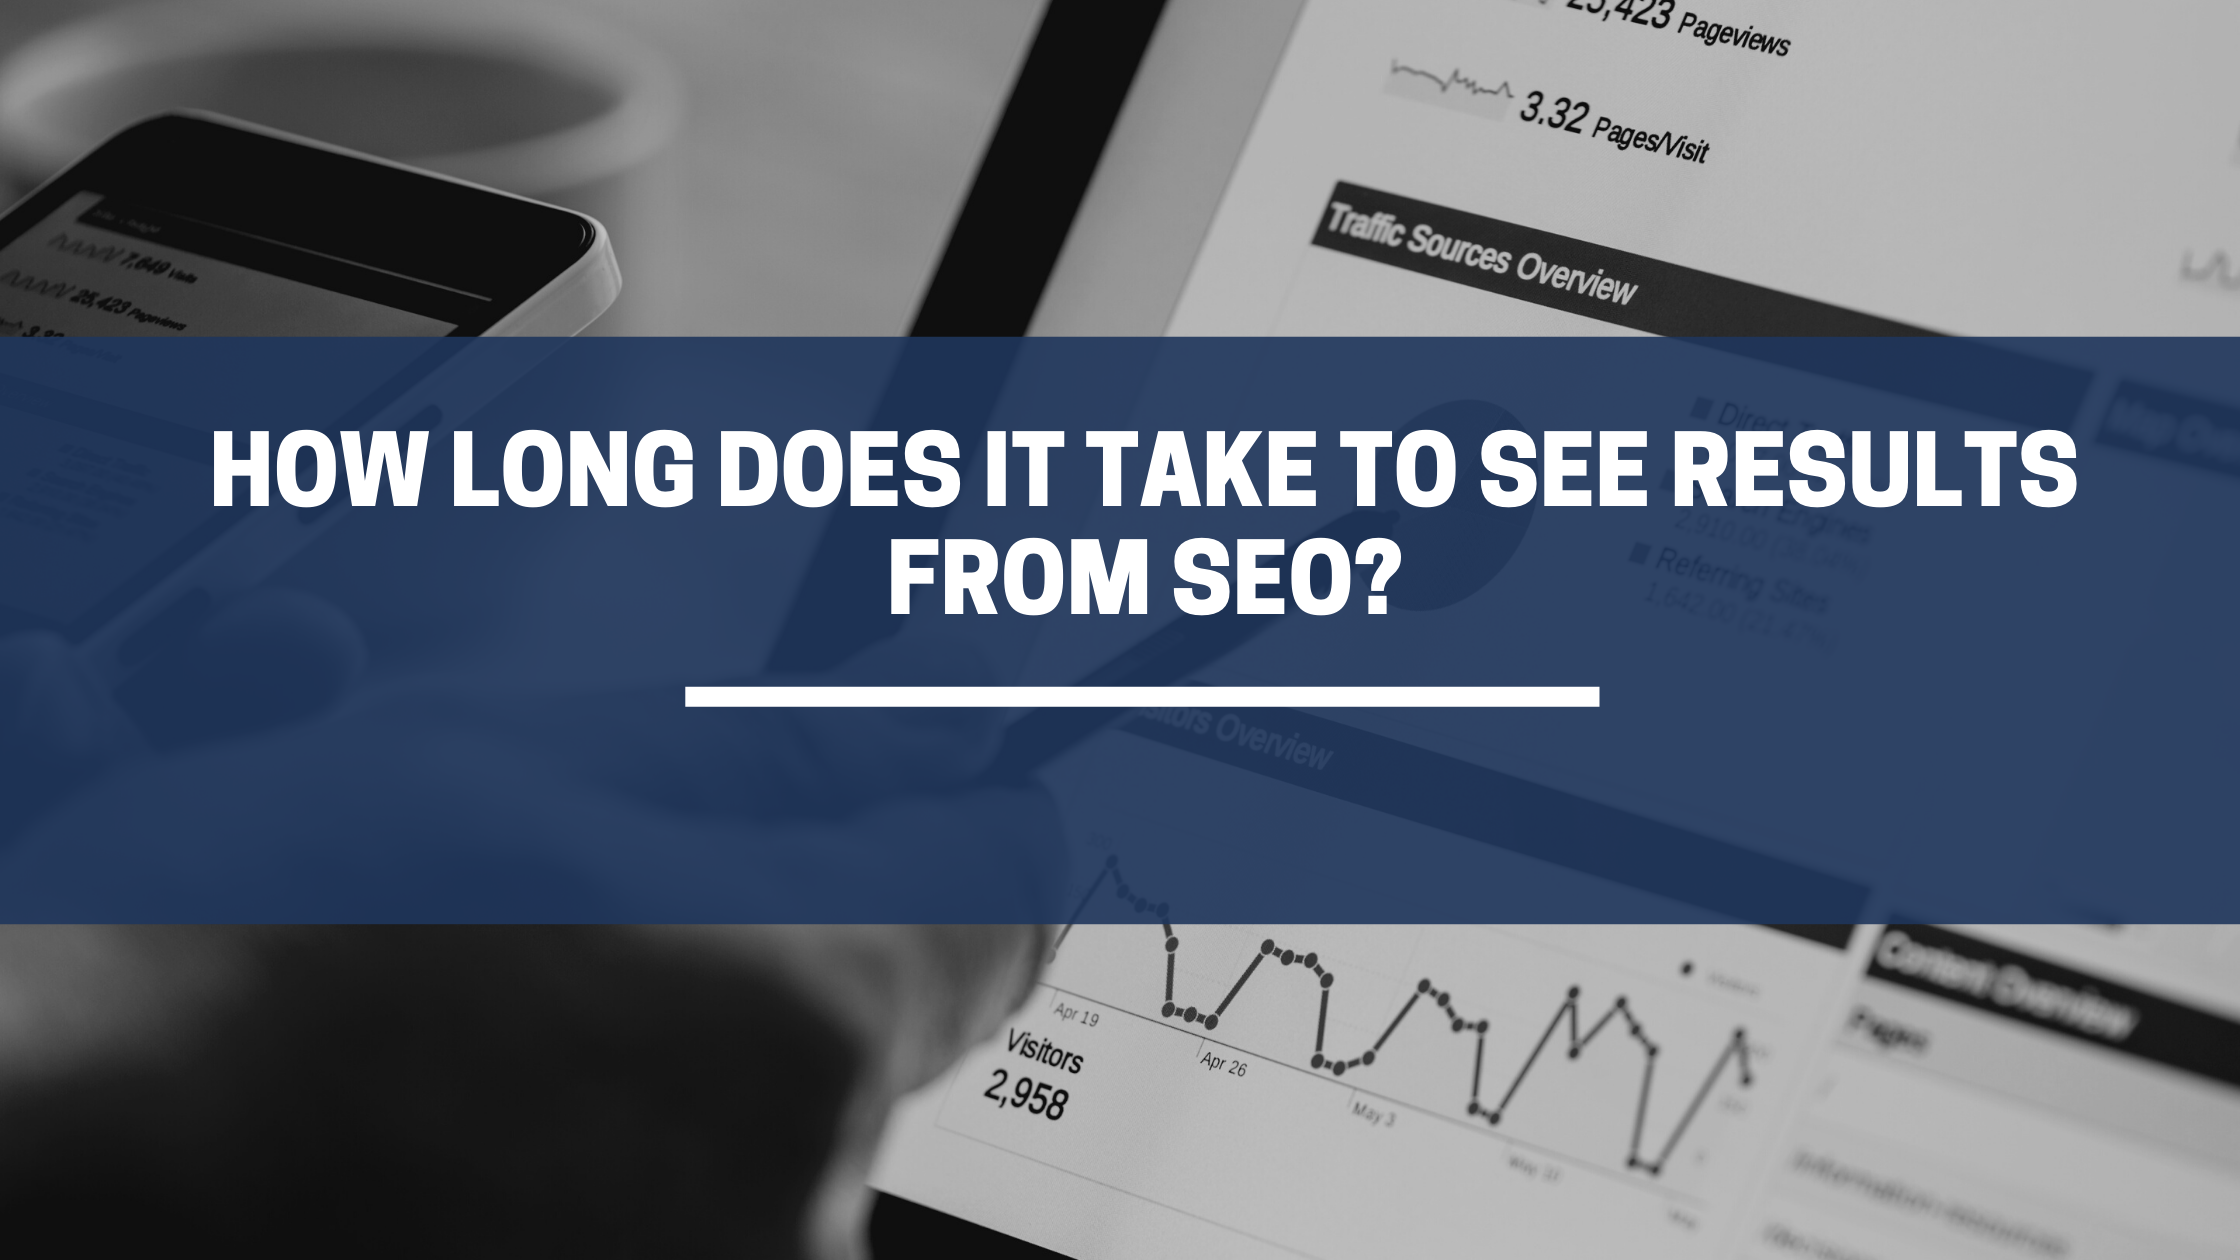 How Long Does It Take To See Results From SEO